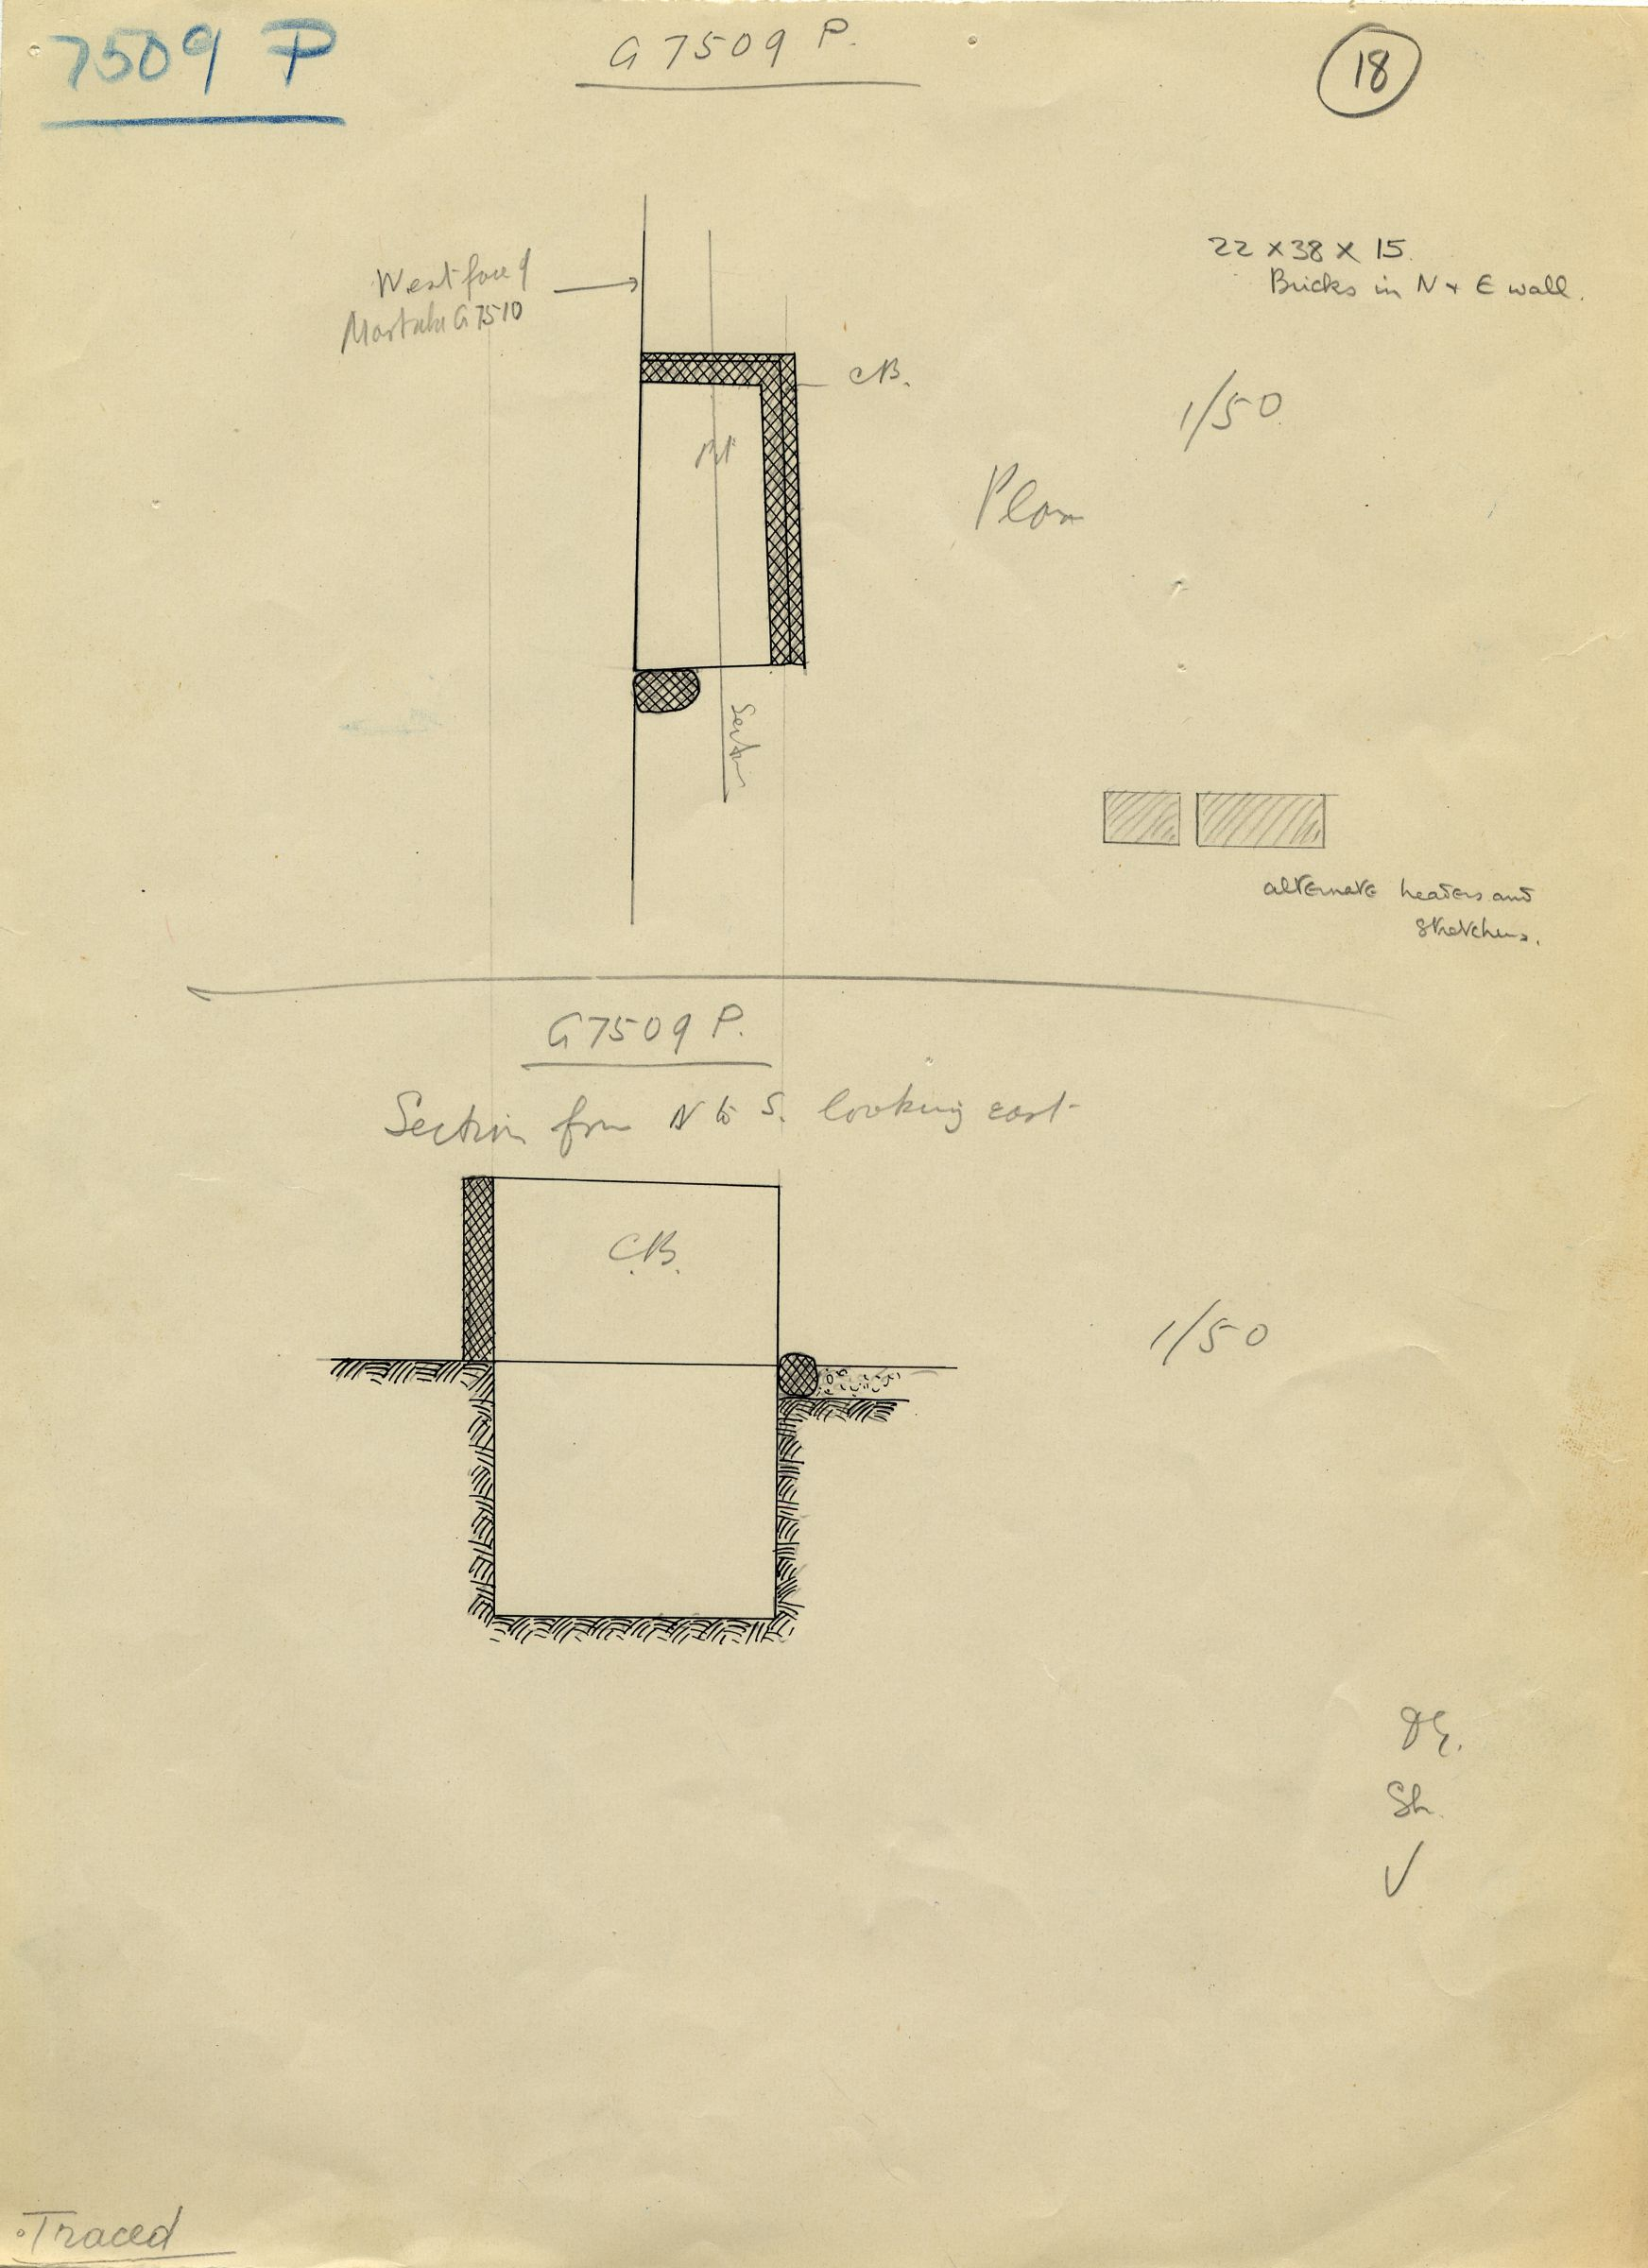 Maps and plans: G 7509, Shaft P